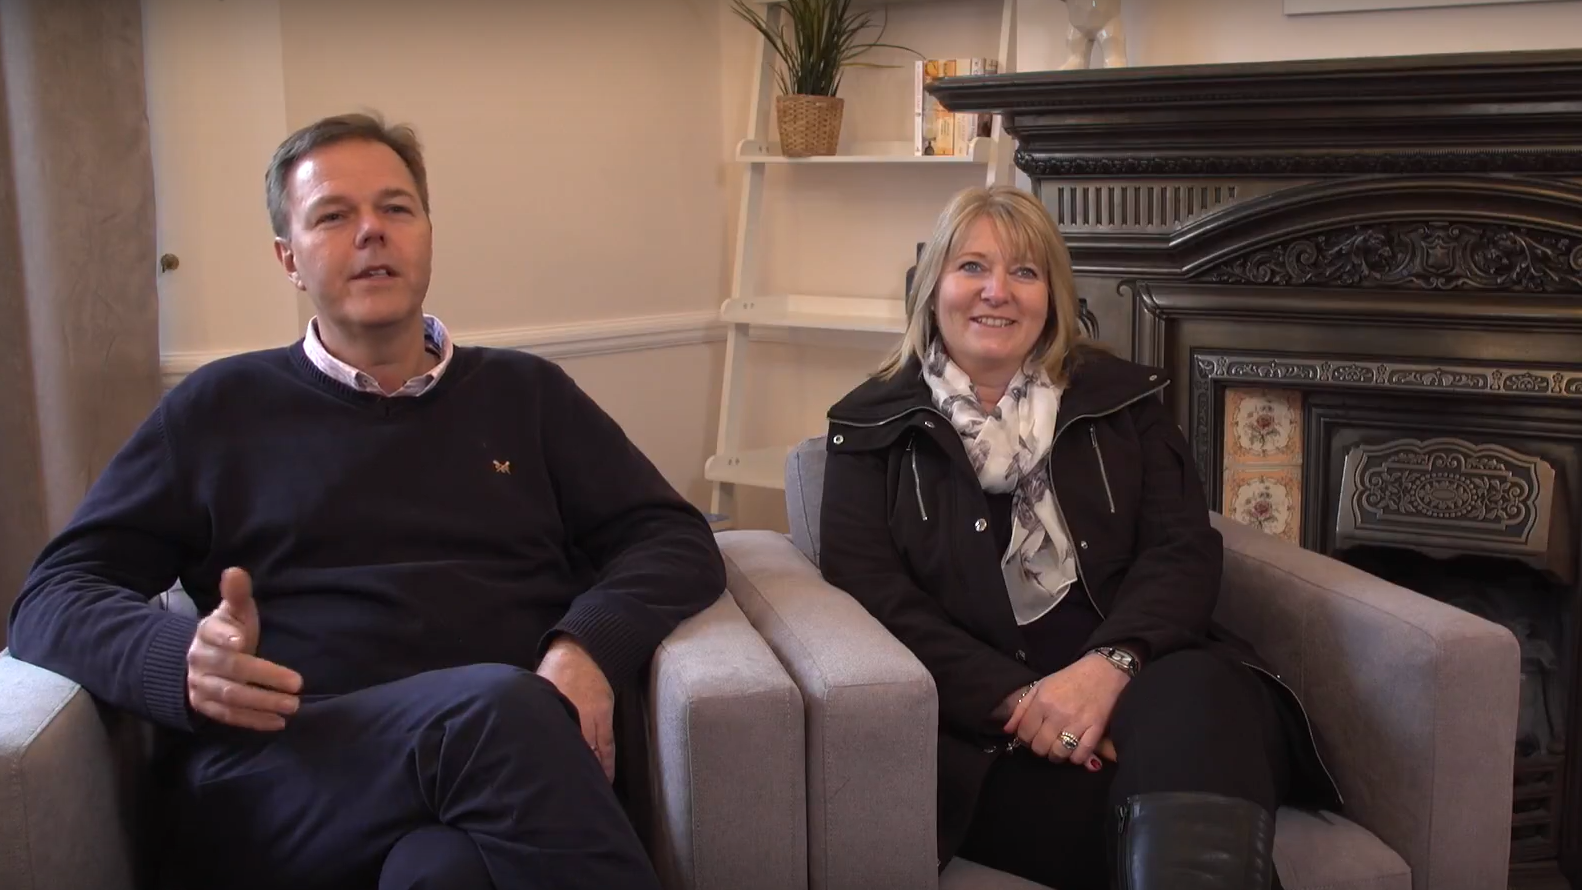 landlord case study - allan and gill